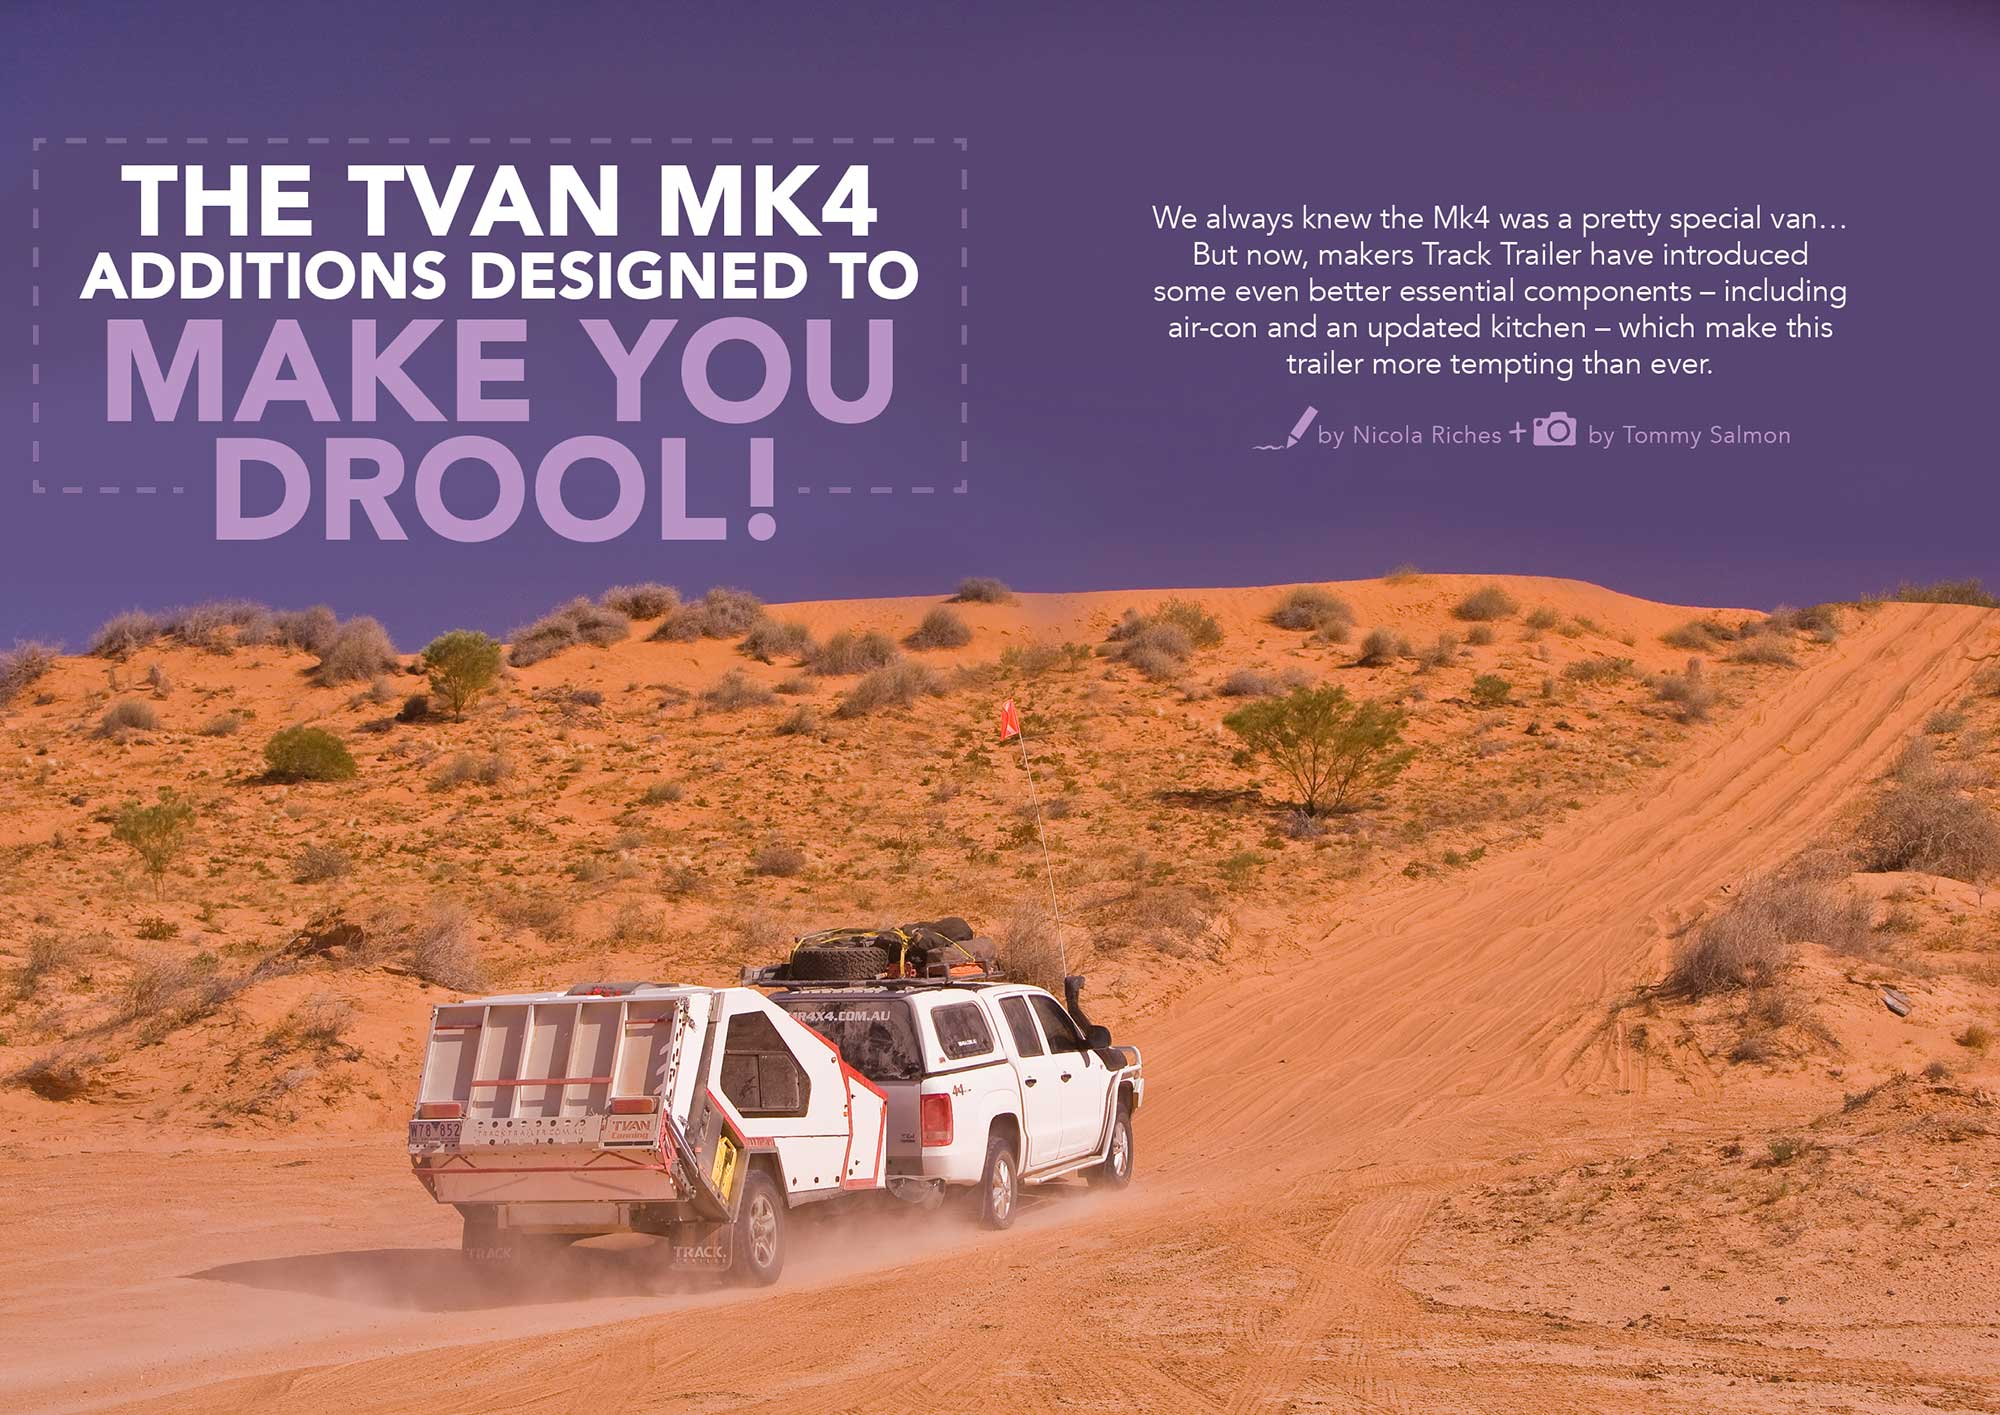 The Tvan Mk4 Additions Designed to Make You Drool!